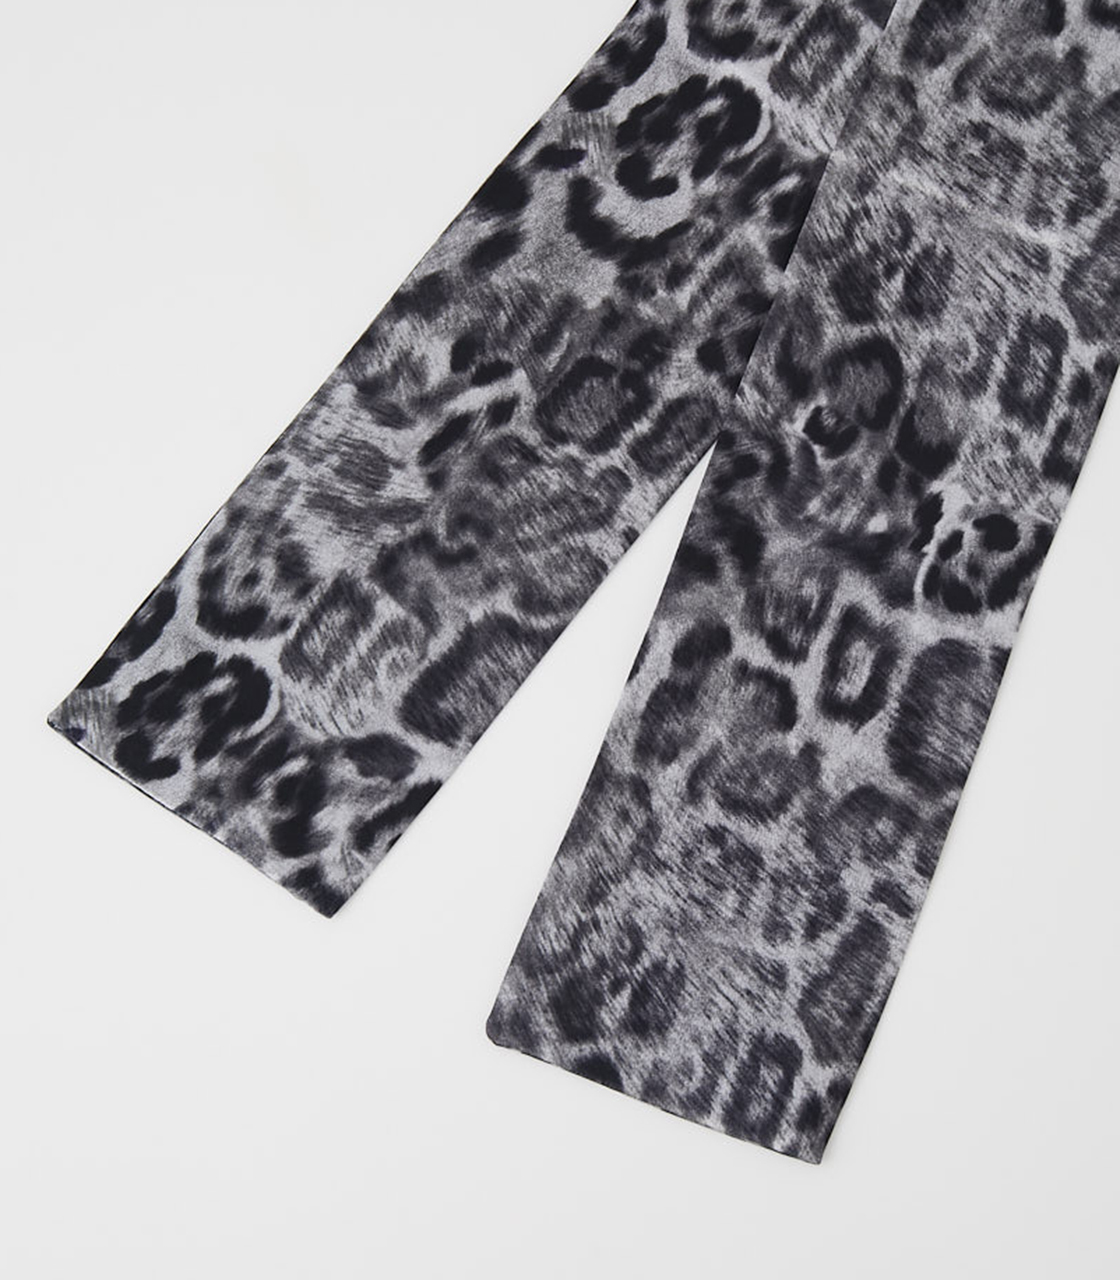 LEOPARD SCARF NECKLACE/レオパードスカーフネックレス 詳細画像 柄GRY 3